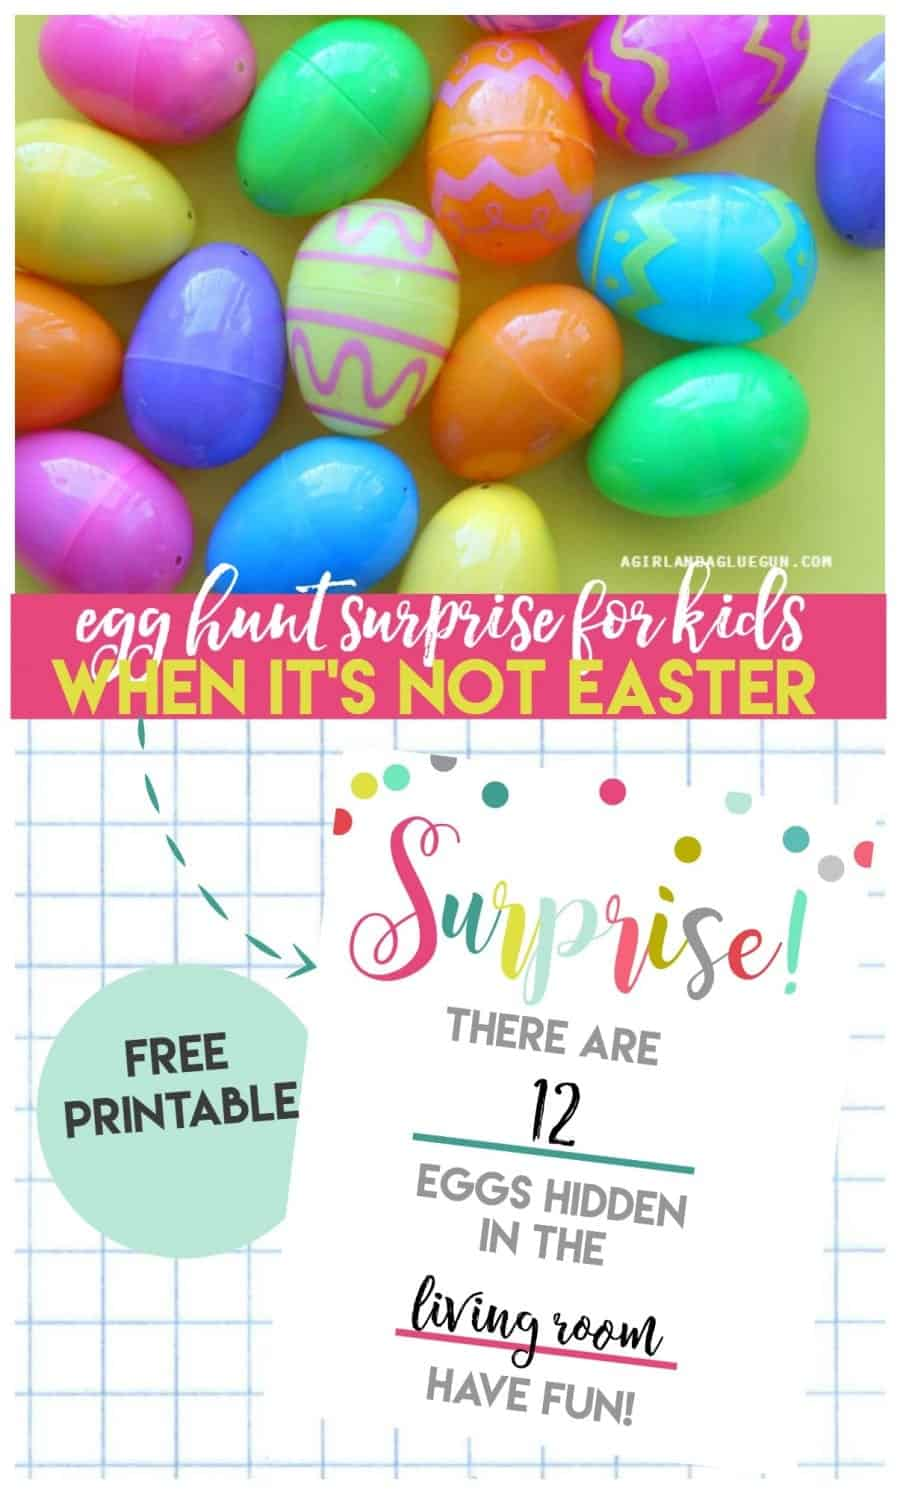 egg hunt surprise for kids--when it's NOT easter